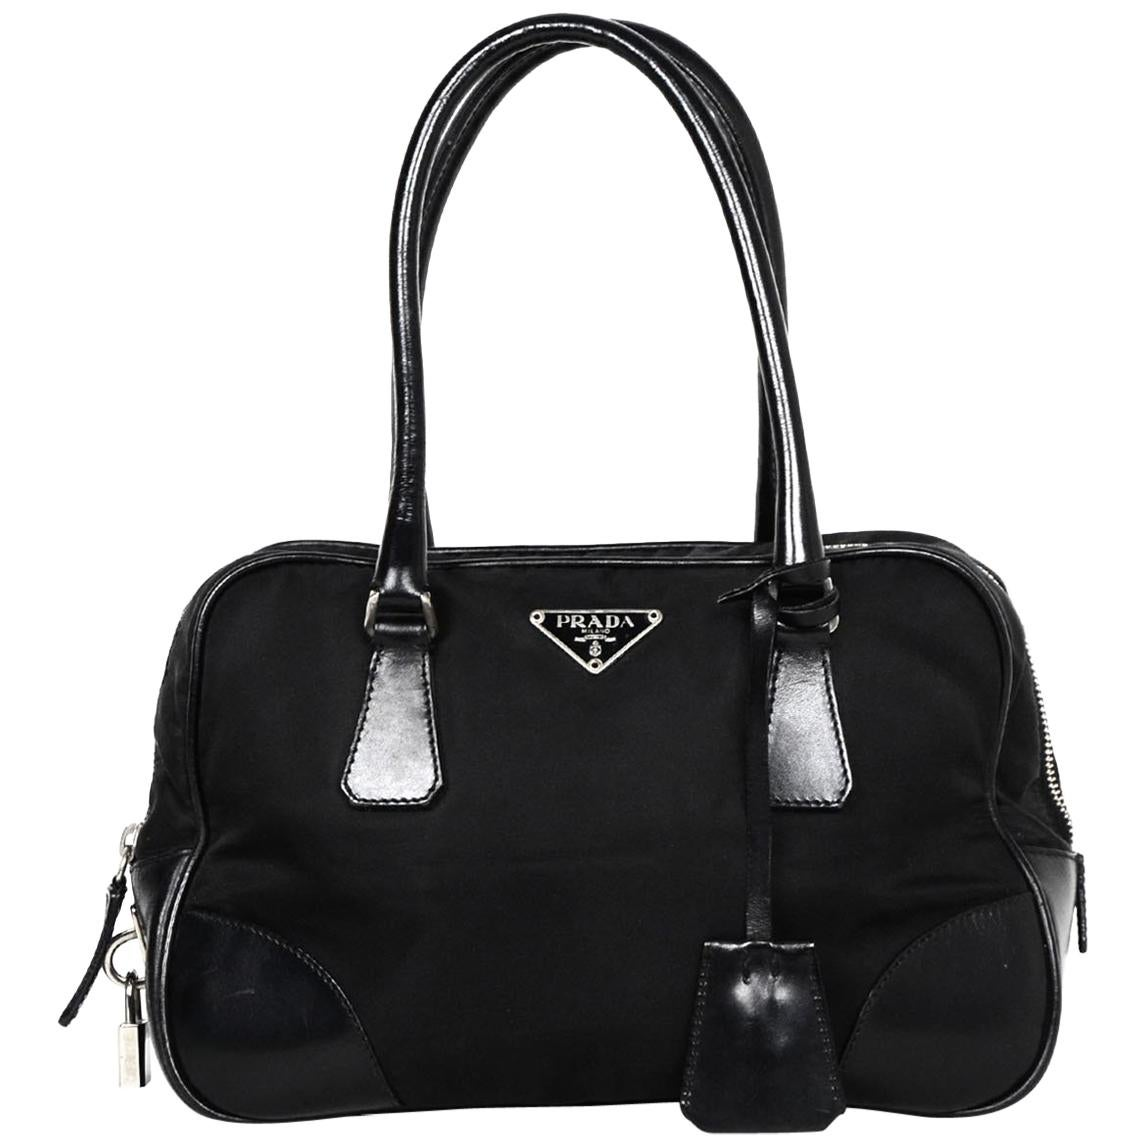 caff77d9f41f Vintage Prada Top Handle Bags - 245 For Sale at 1stdibs